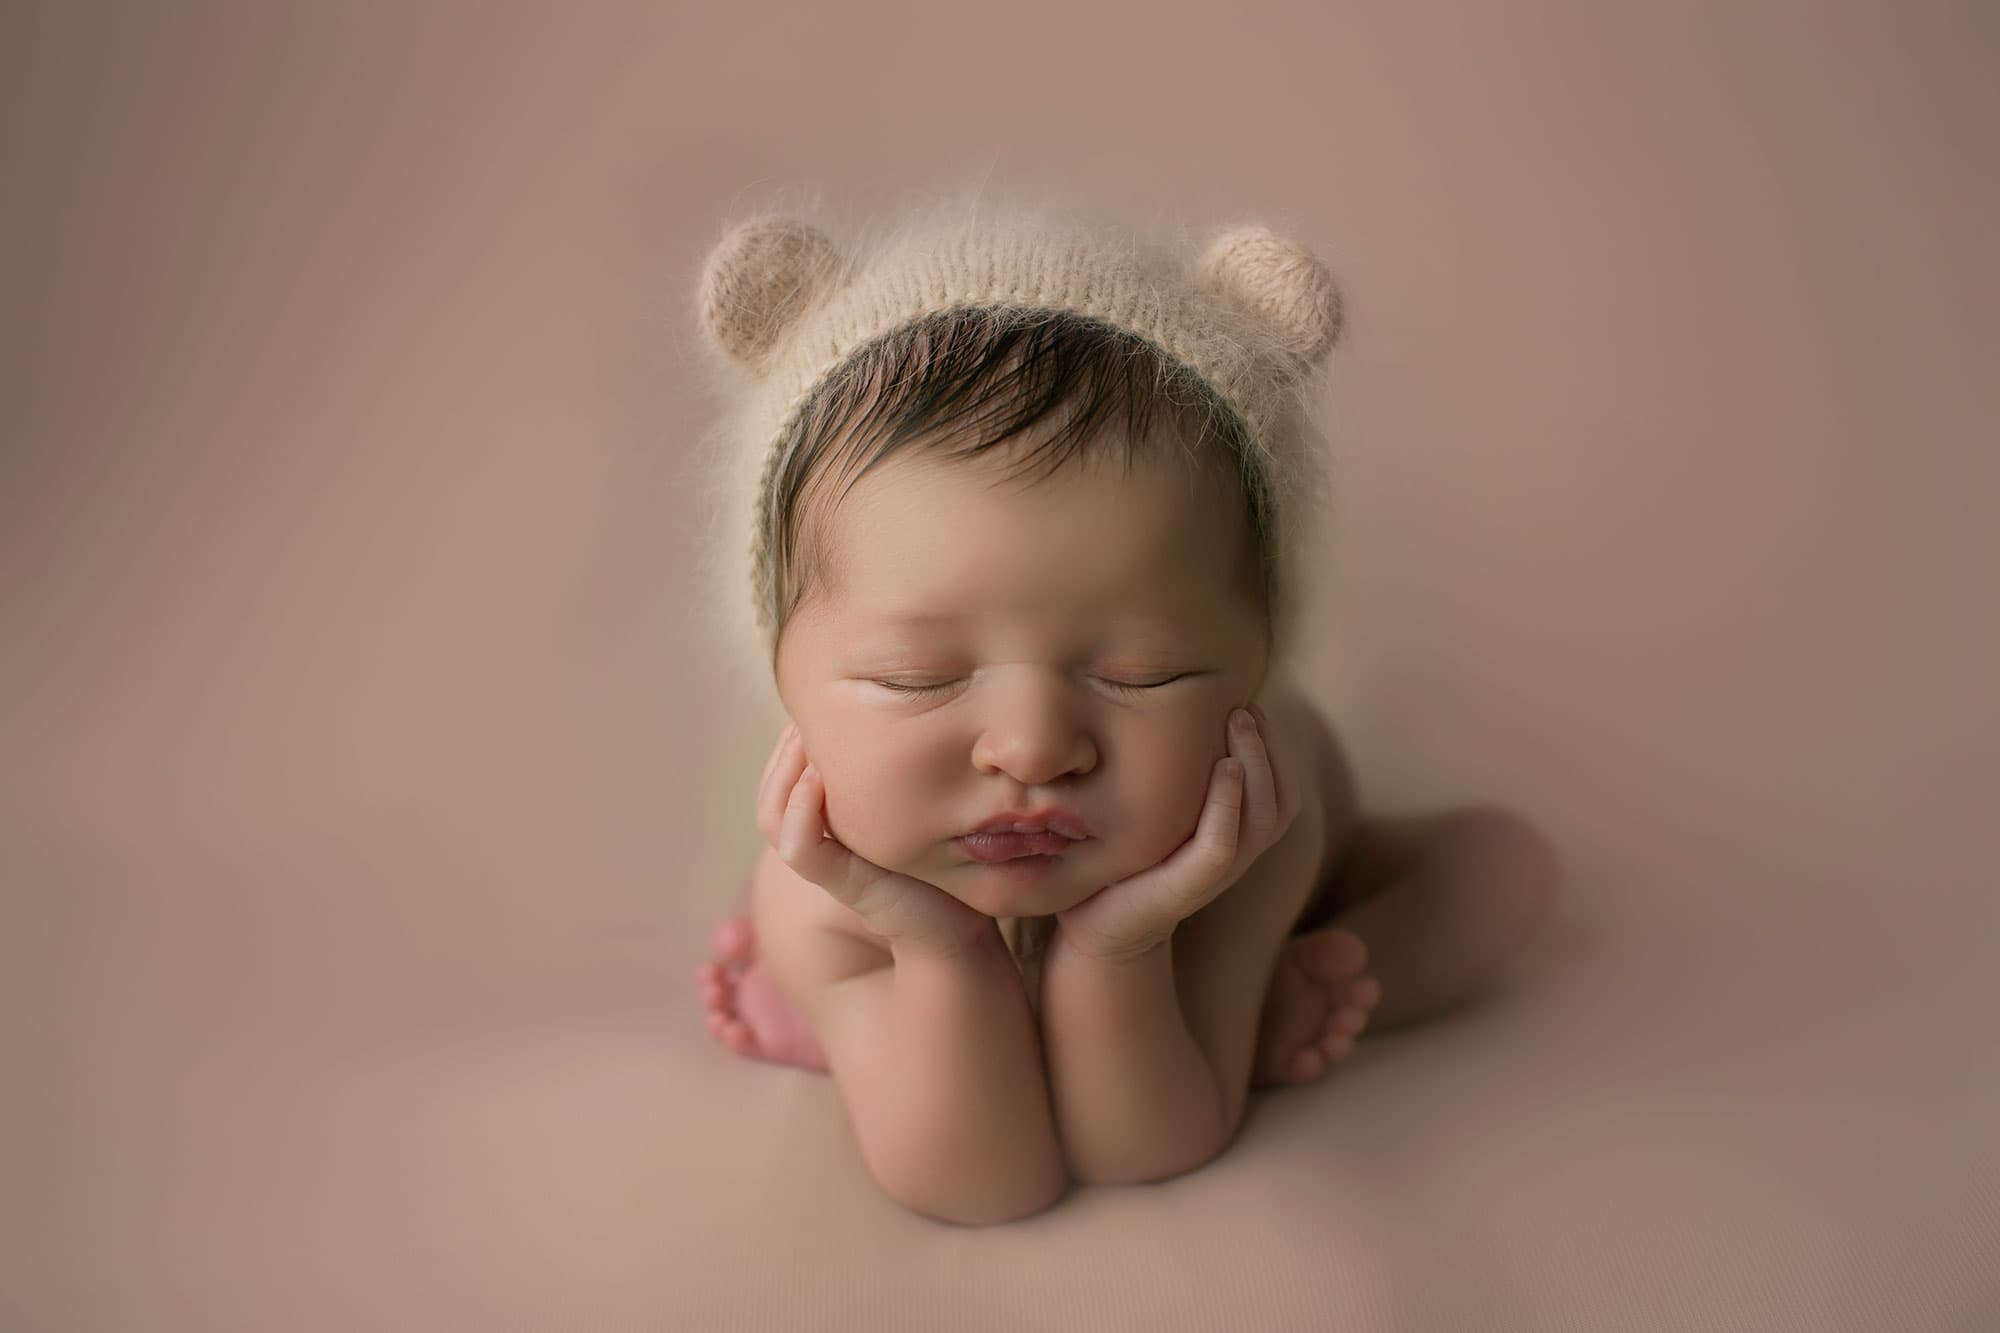 newborn boy in froggy pose